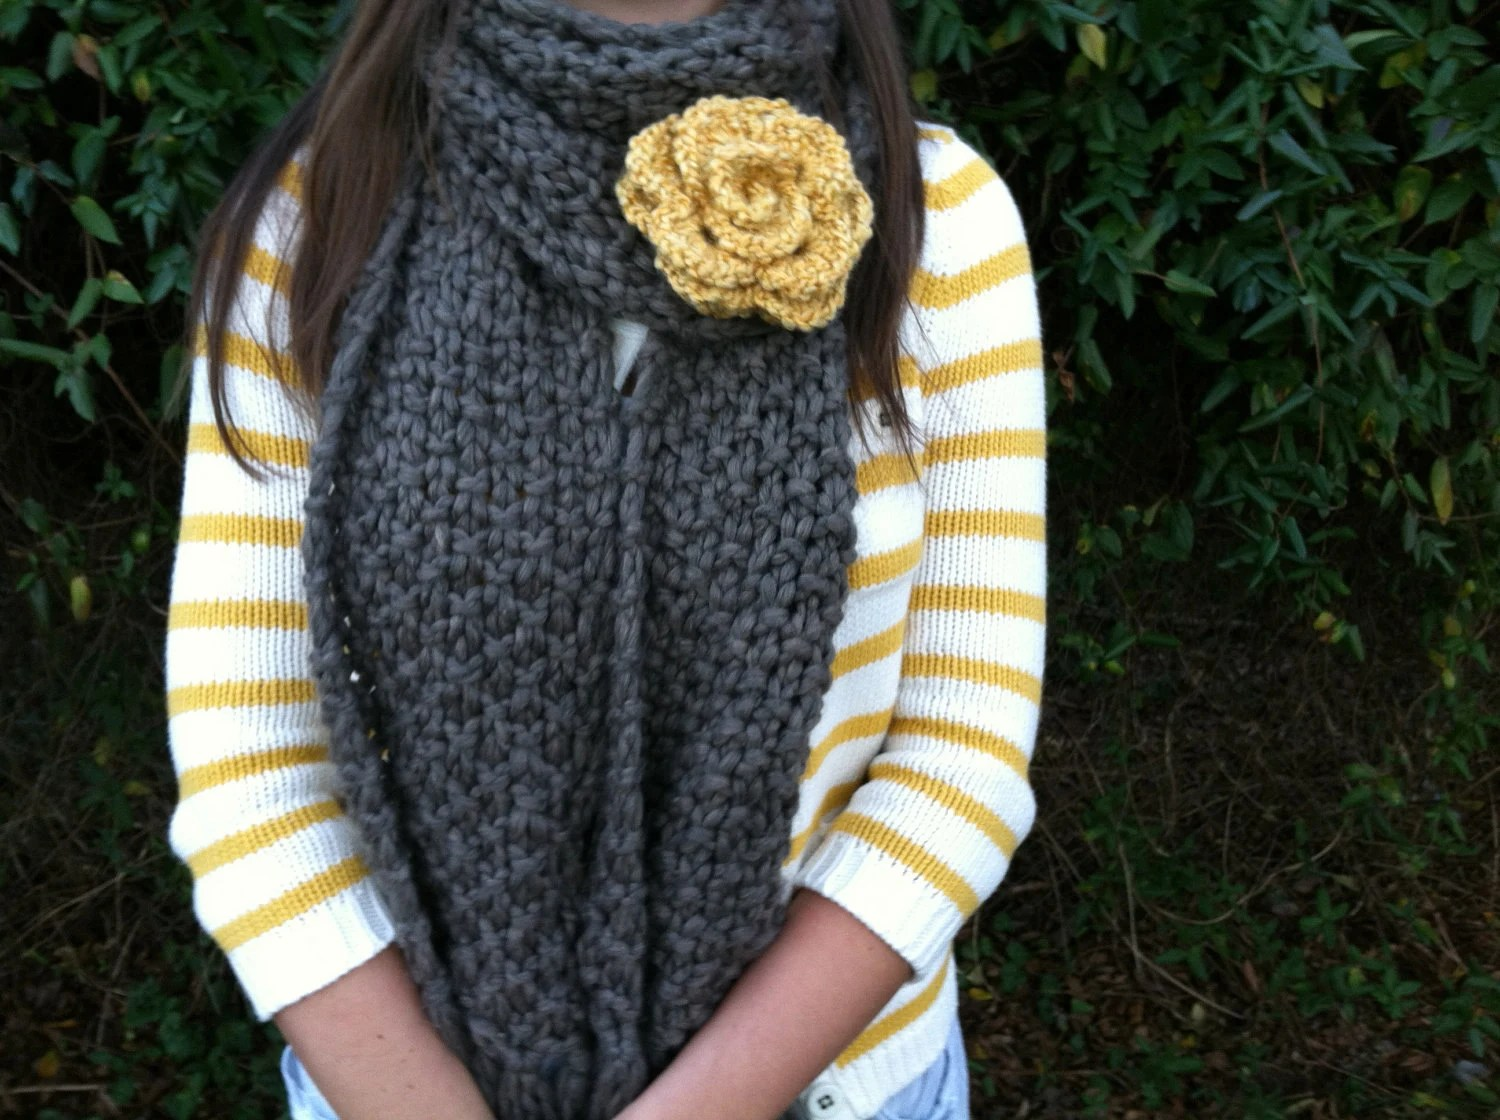 Crochet Rose Pattern Step By Step : Crochet roses in 9 steps: Free crochet pattern with step ...